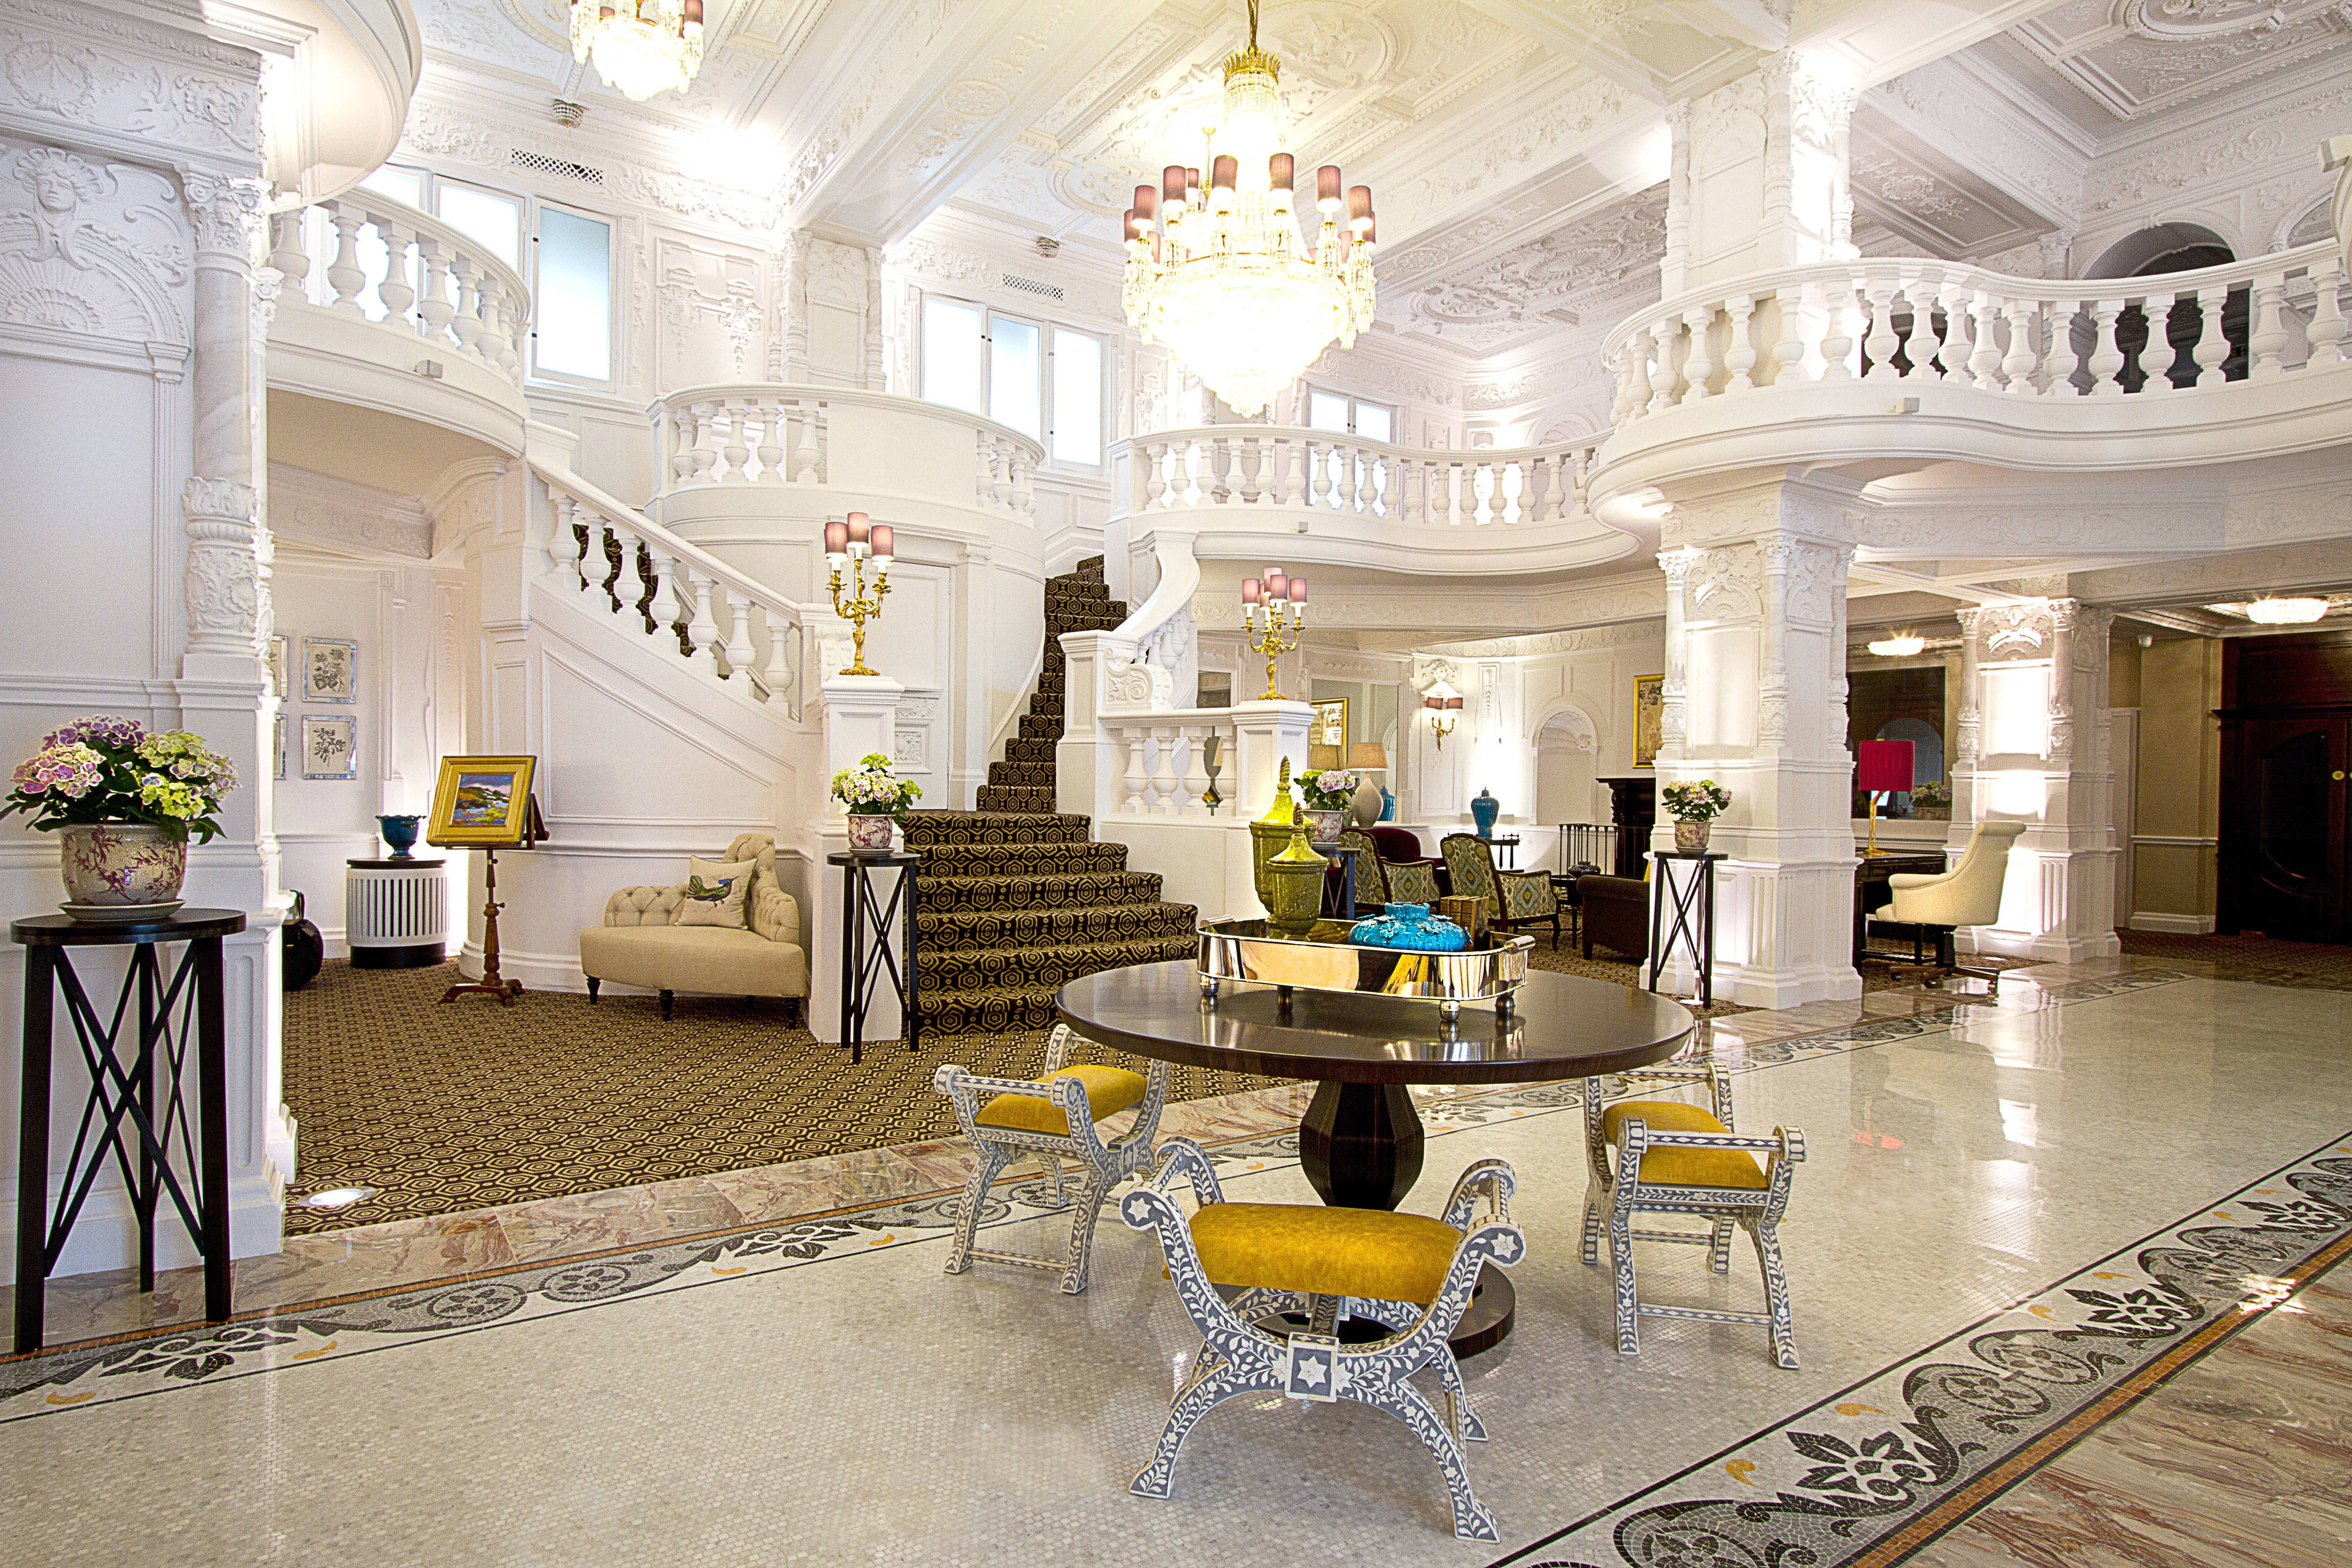 Lobby do hotel St. Ermin's